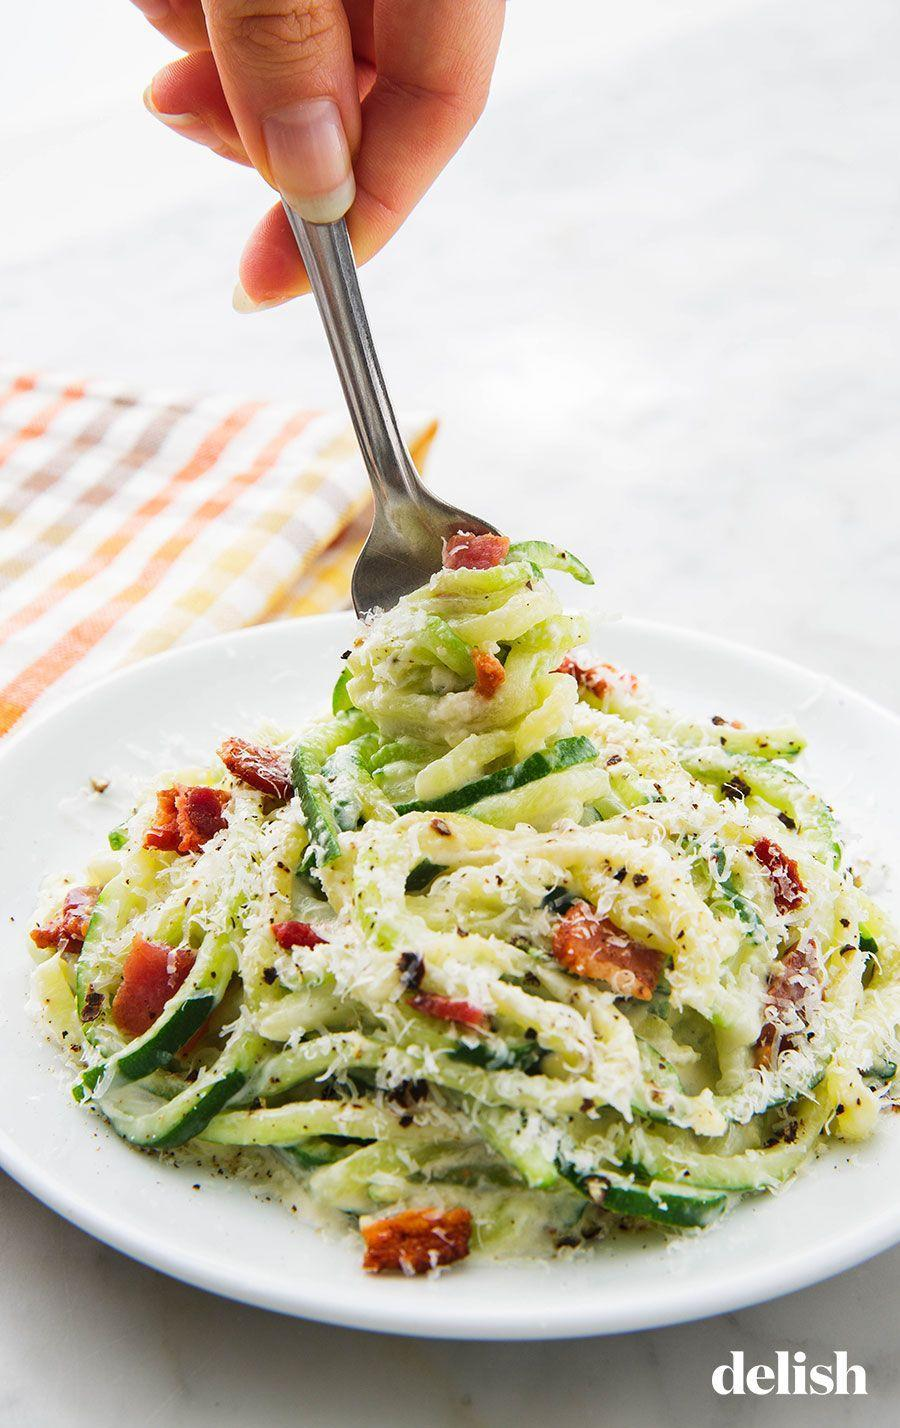 """<p>You can add chicken, if that's more your vibe.</p><p>Get the recipe from <a href=""""https://www.delish.com/cooking/recipe-ideas/a24742964/keto-zoodles-alfredo-sauce-recipe/"""" rel=""""nofollow noopener"""" target=""""_blank"""" data-ylk=""""slk:Delish"""" class=""""link rapid-noclick-resp"""">Delish</a>.</p>"""